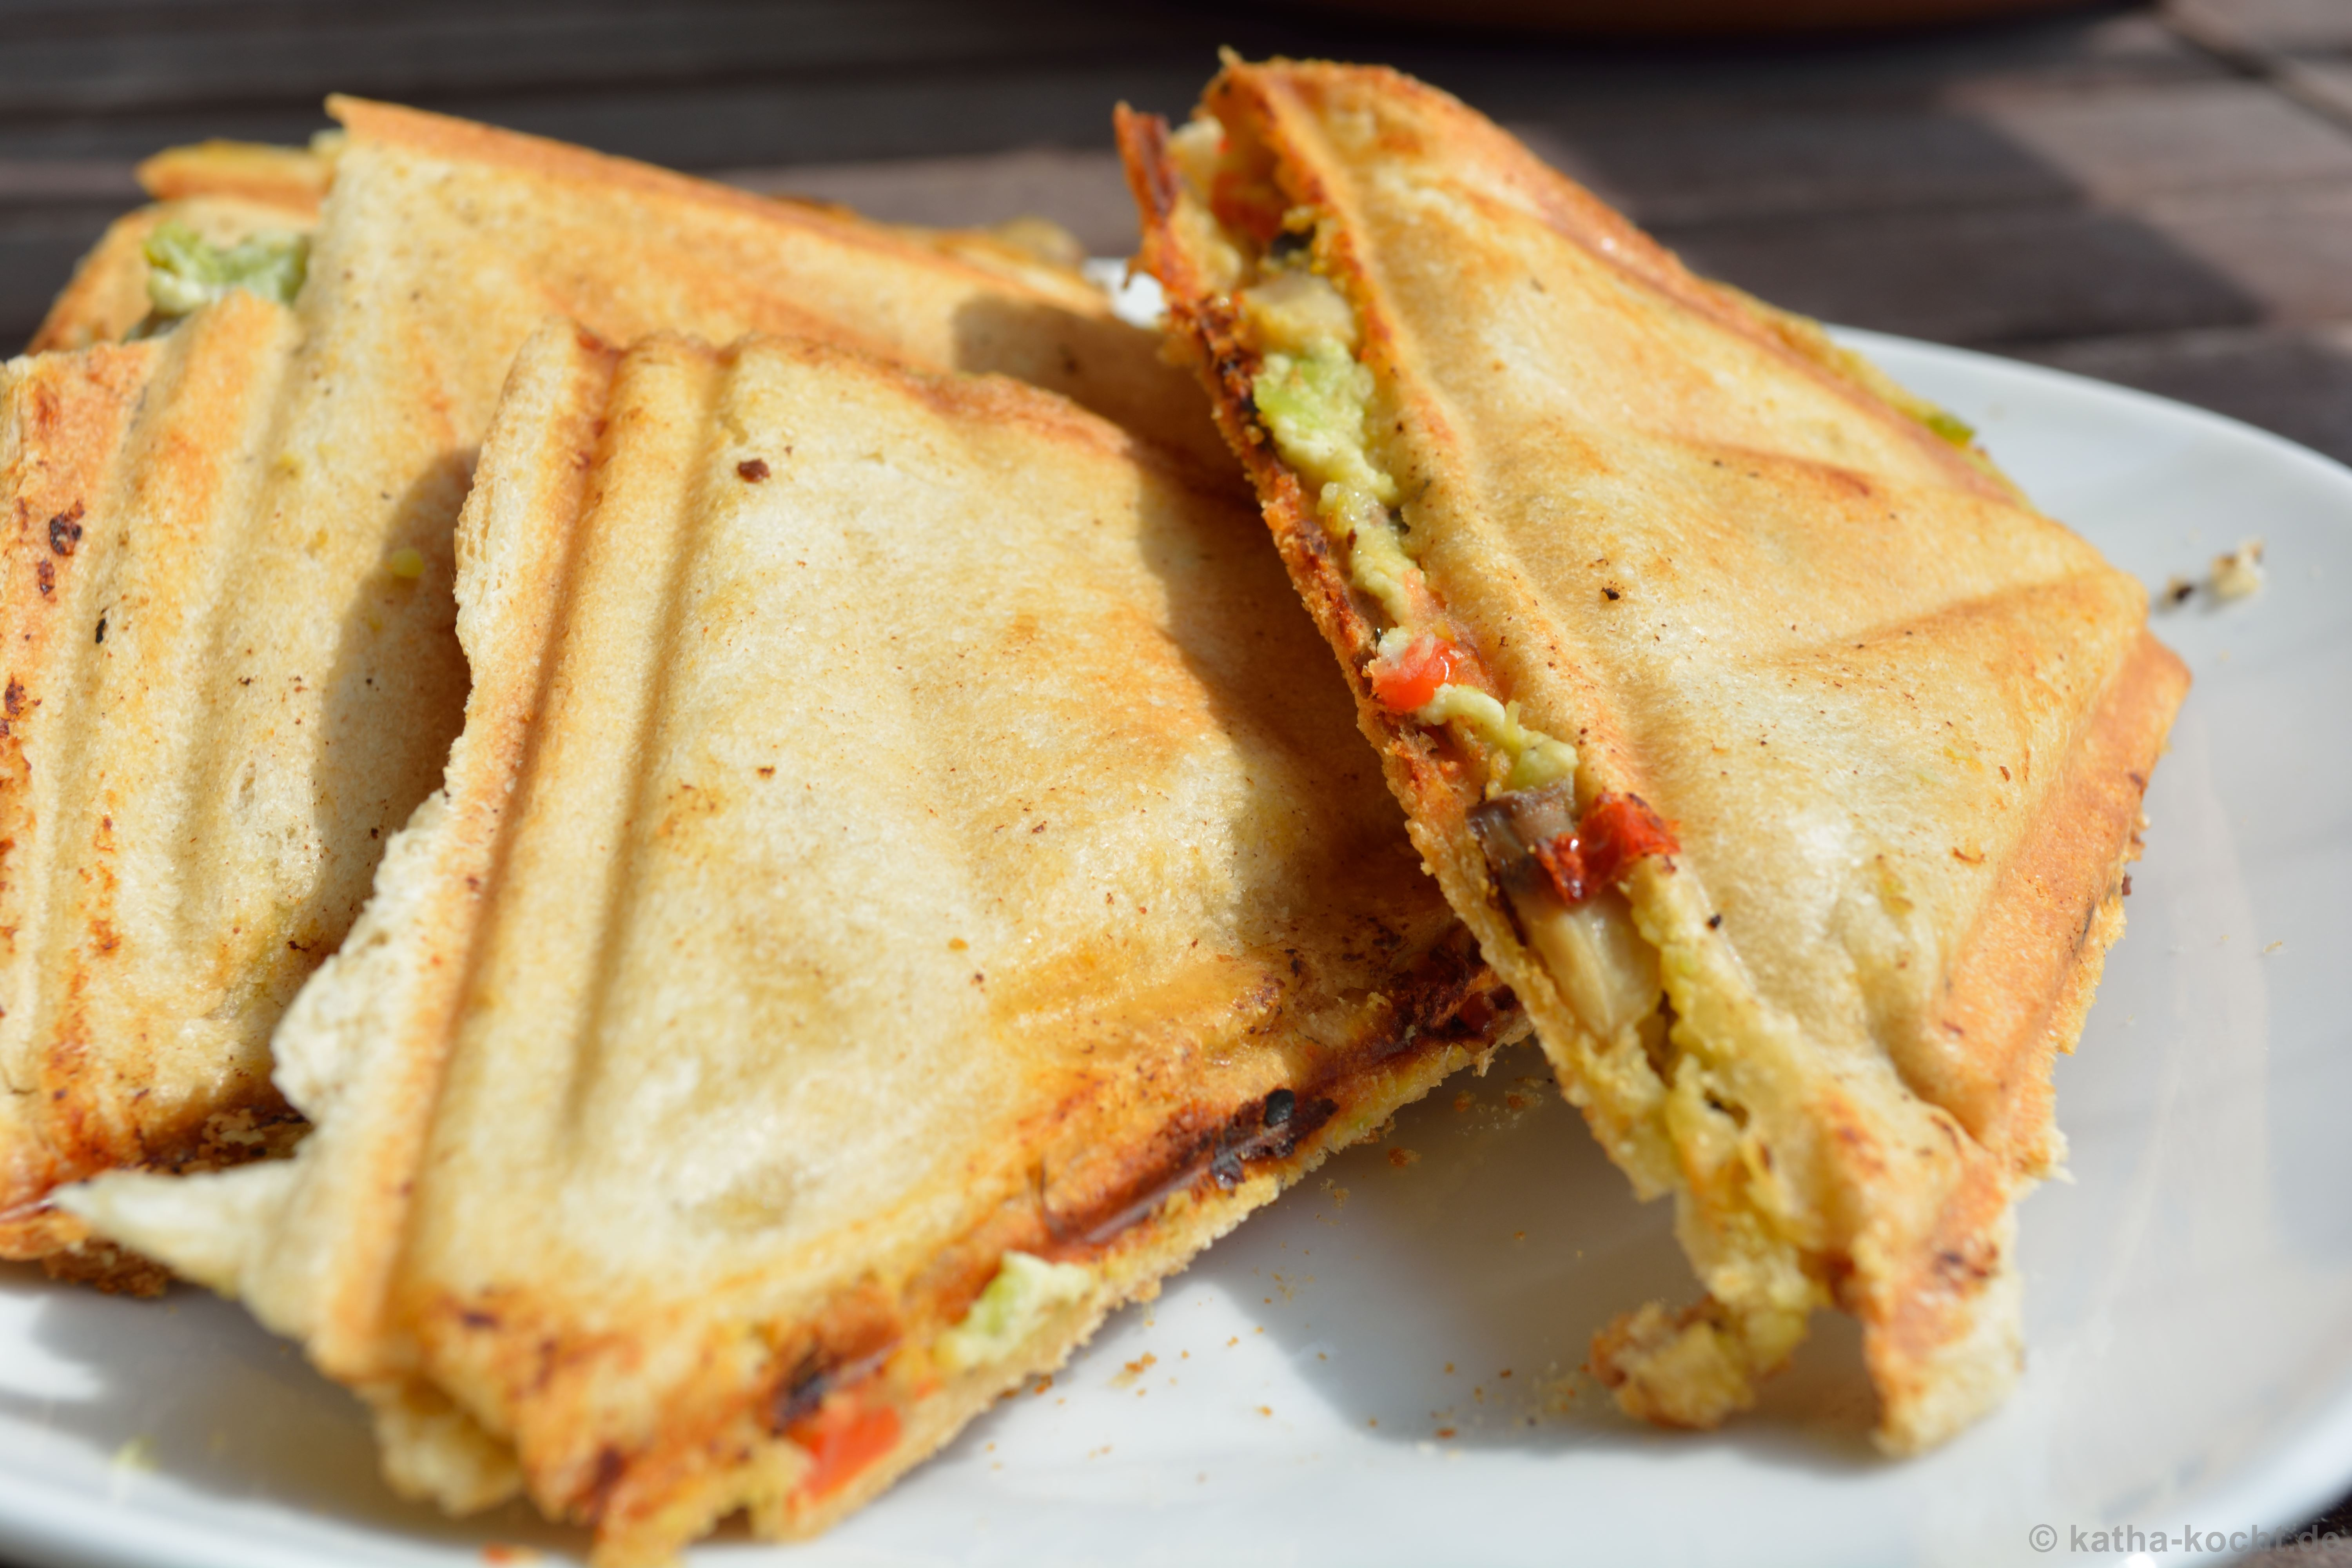 ... . Make sandwiches with toast, herb mayonnaise, avocado, bacon, and